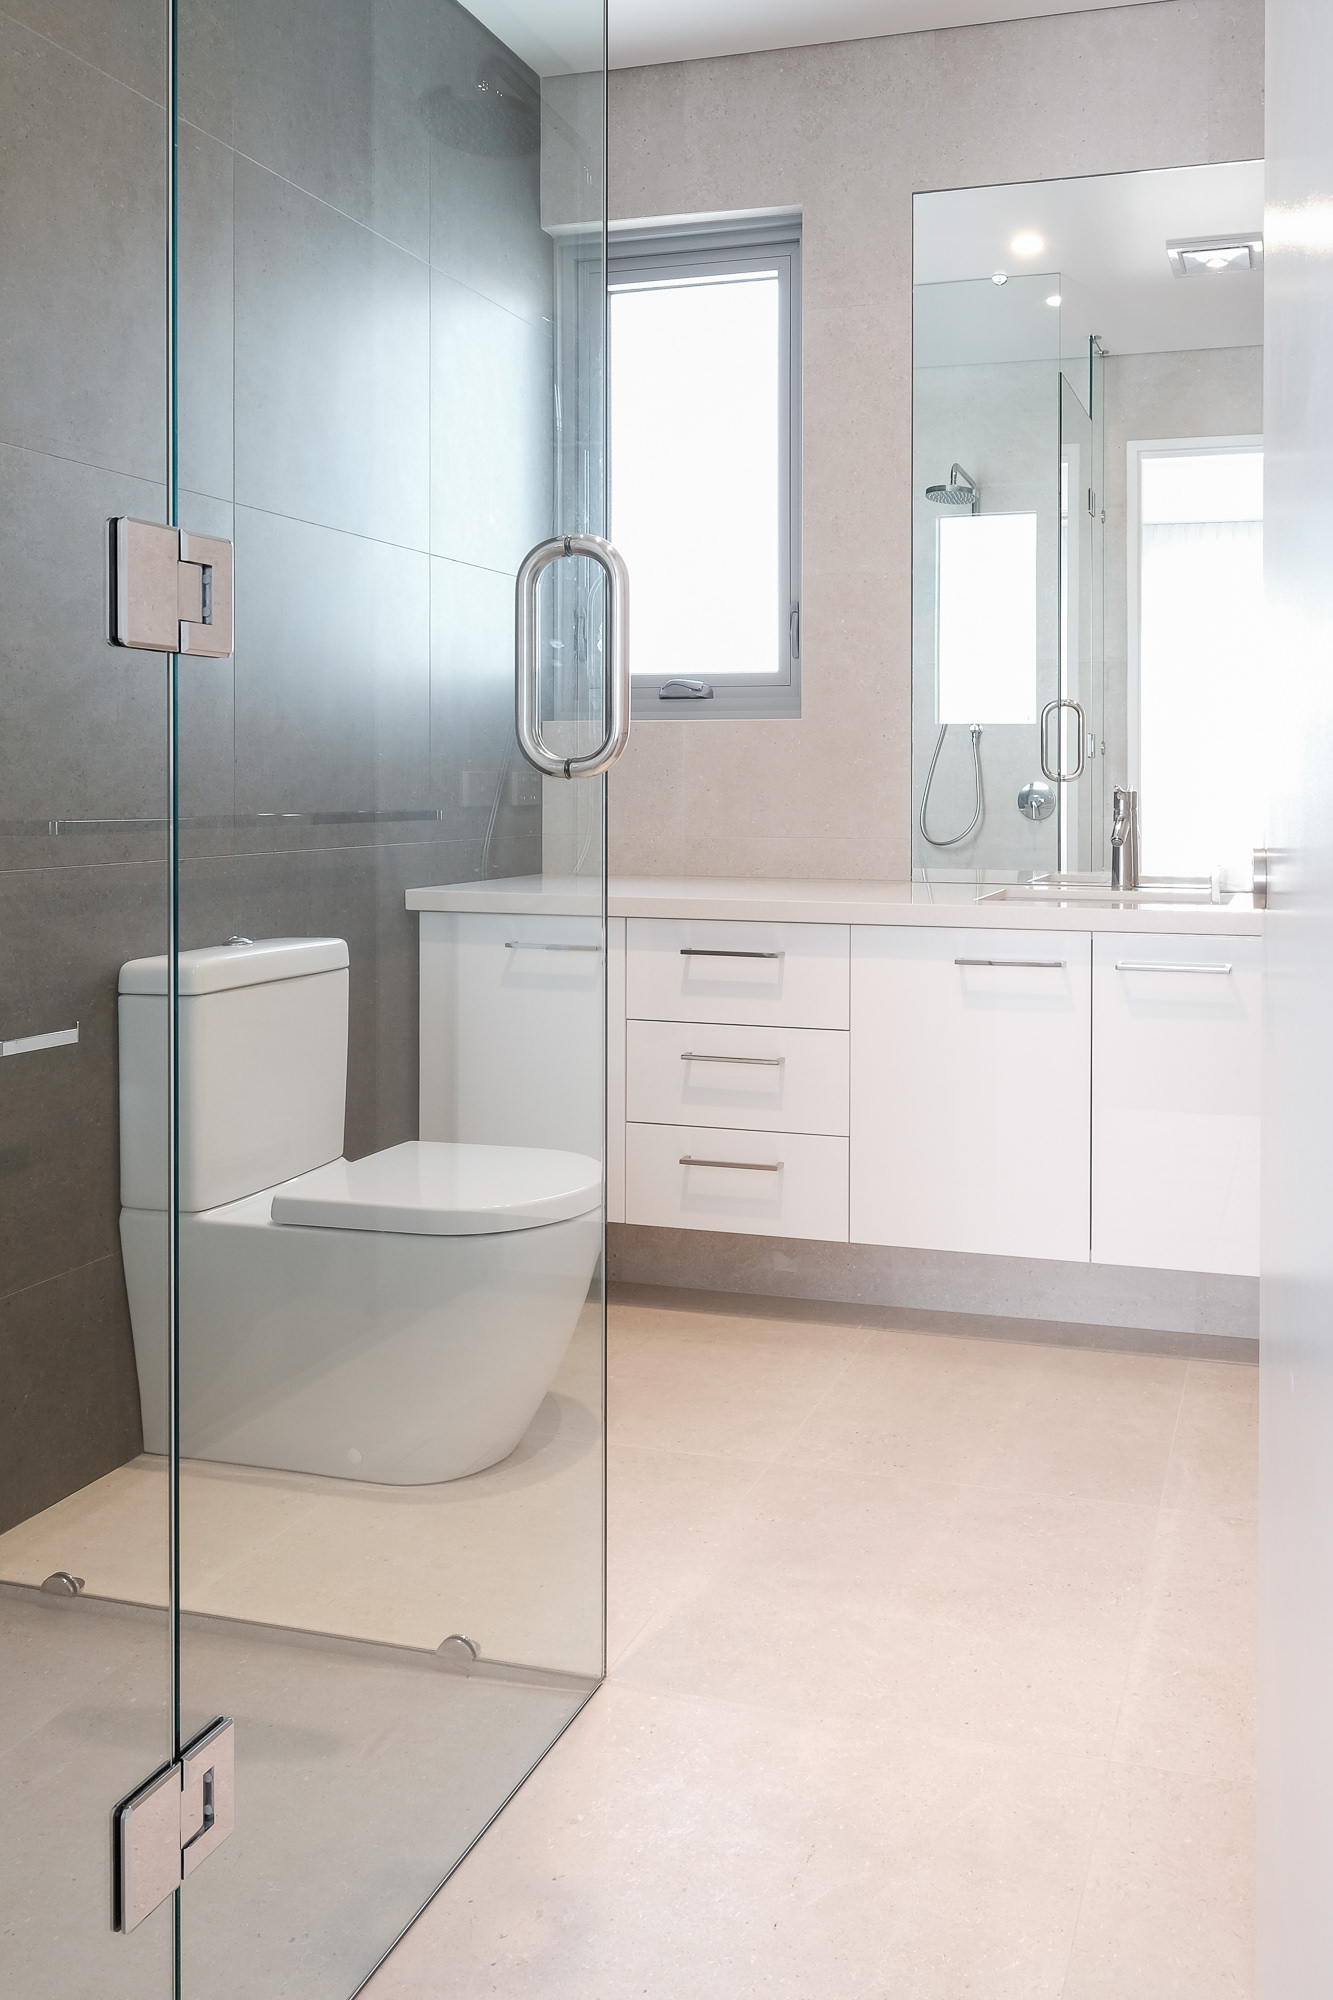 Bathroom Cabinets Perth bathrooms - kitchen cabinets perth, home theatre cabinets western